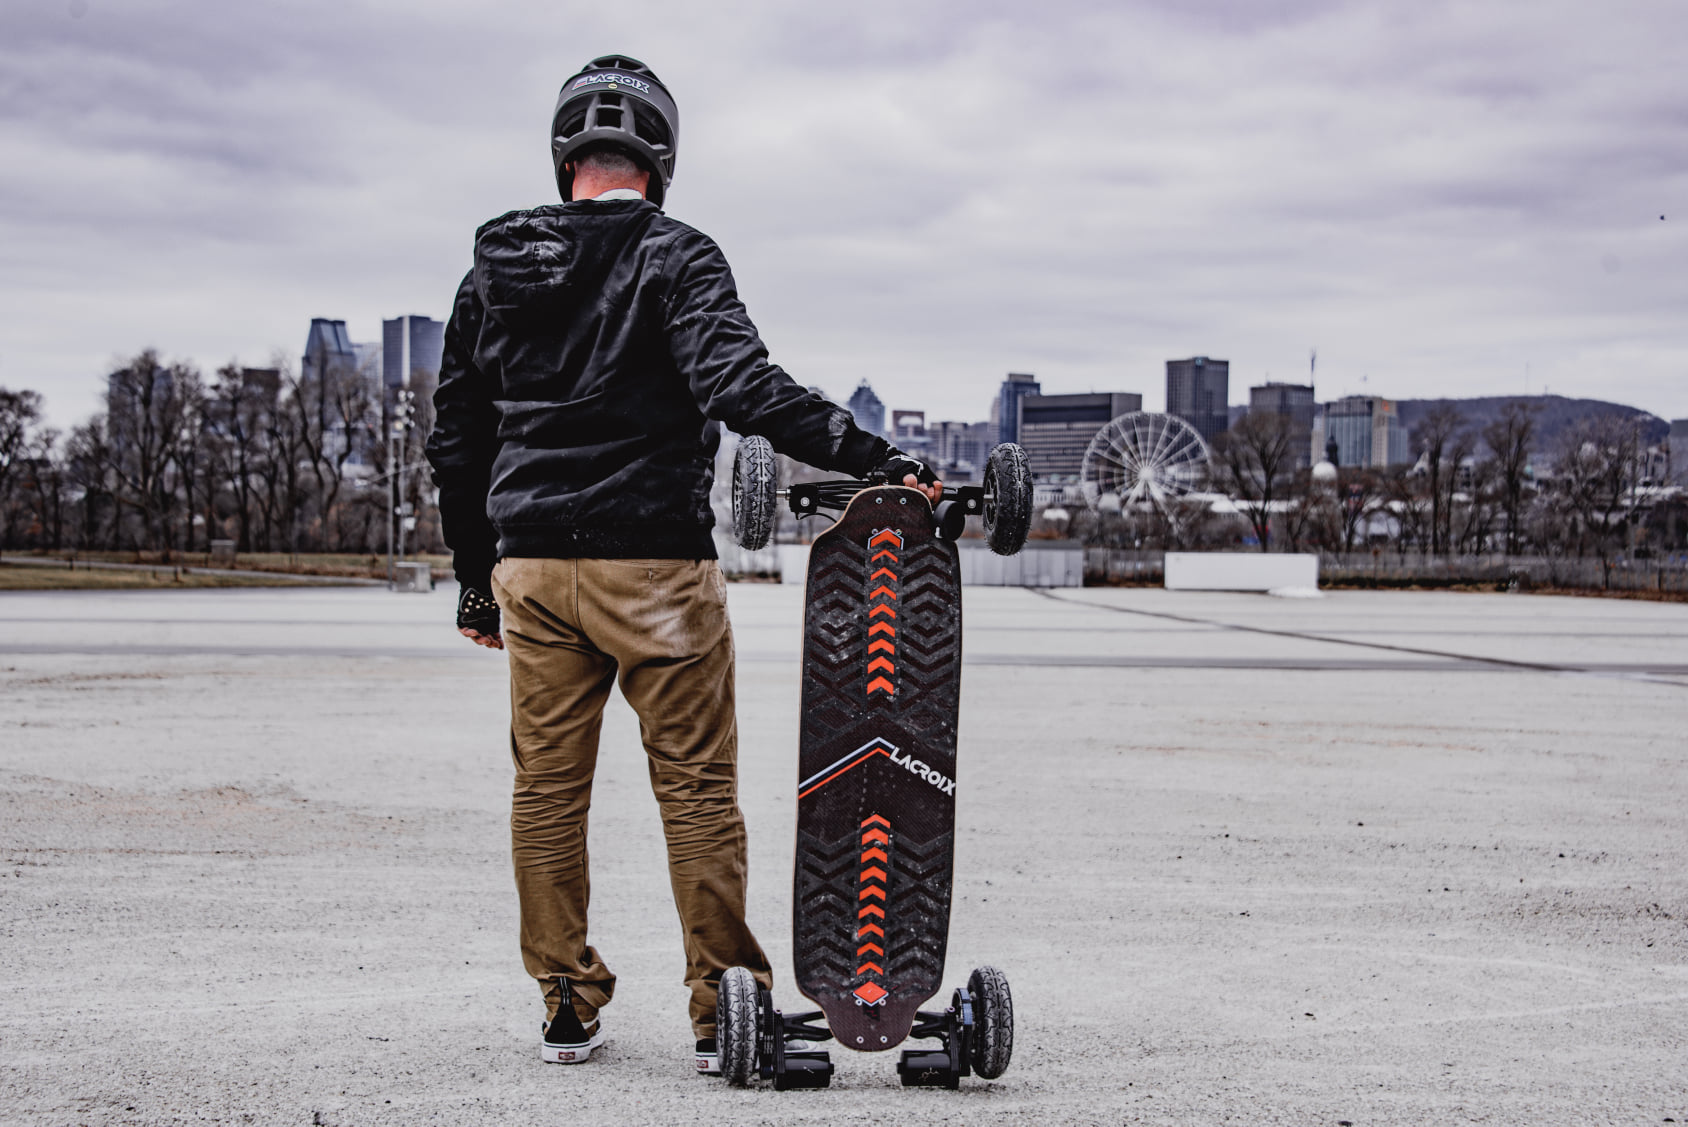 What are the best qualities in an electric skateboard: